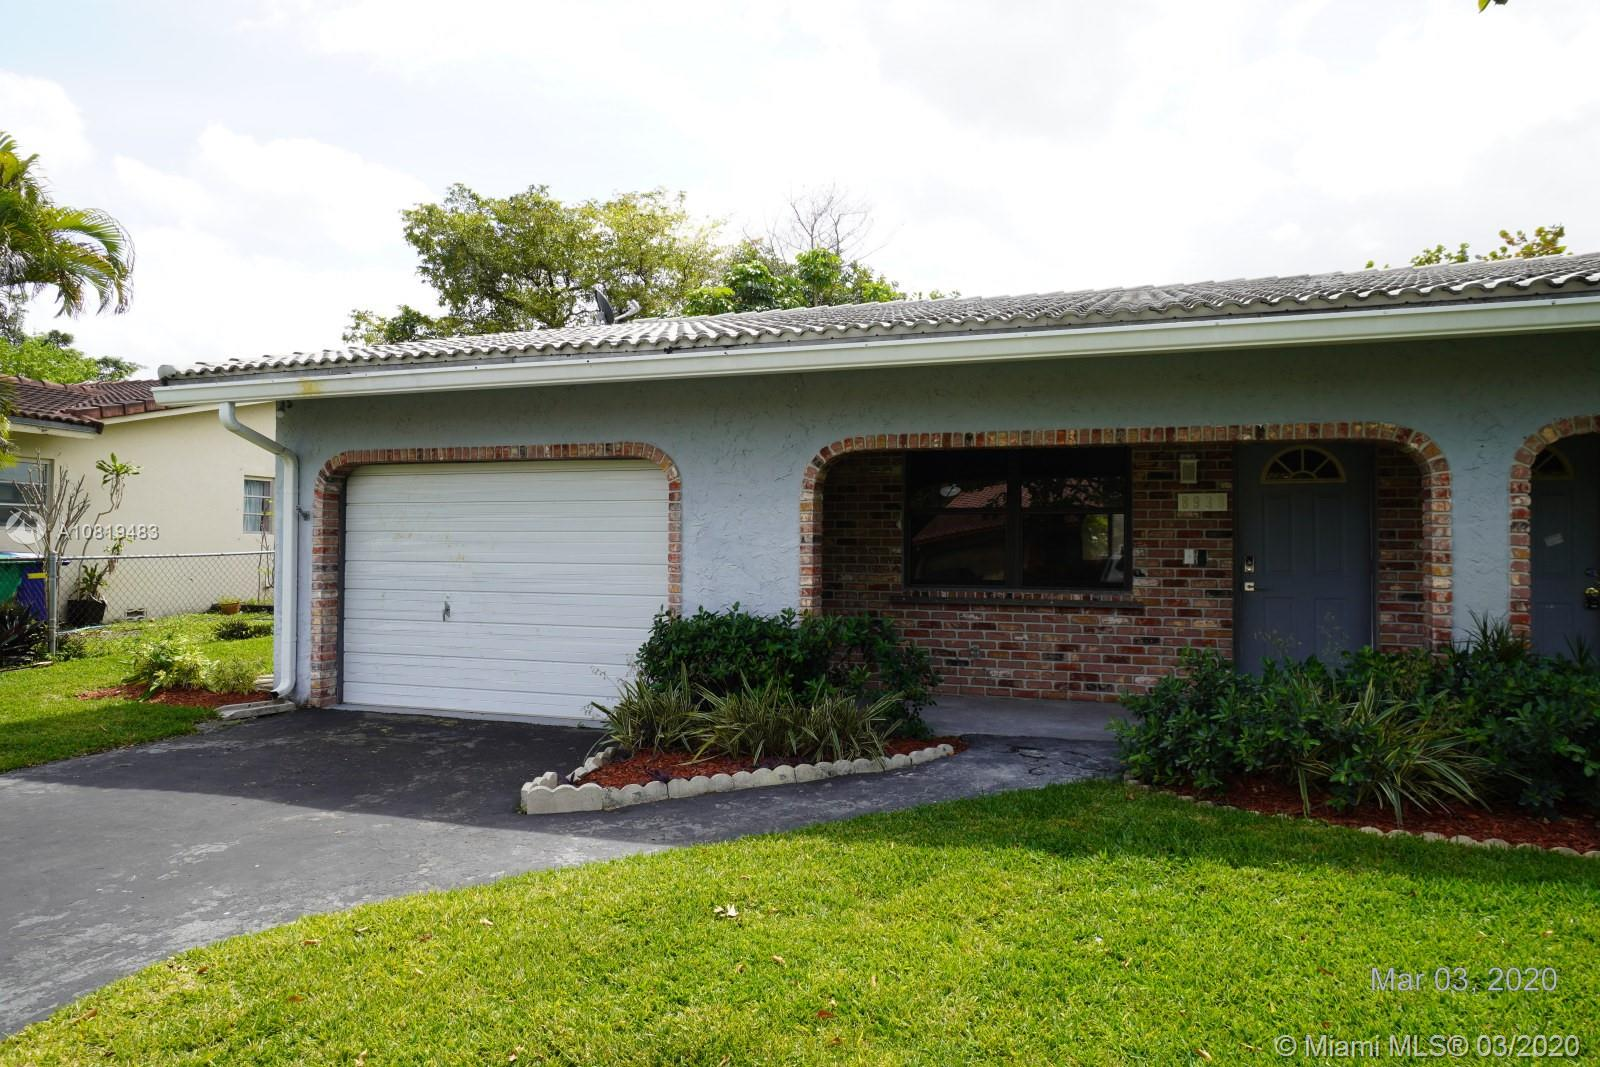 8938 NW 27th St, Coral Springs, FL 33065 - Coral Springs, FL real estate listing